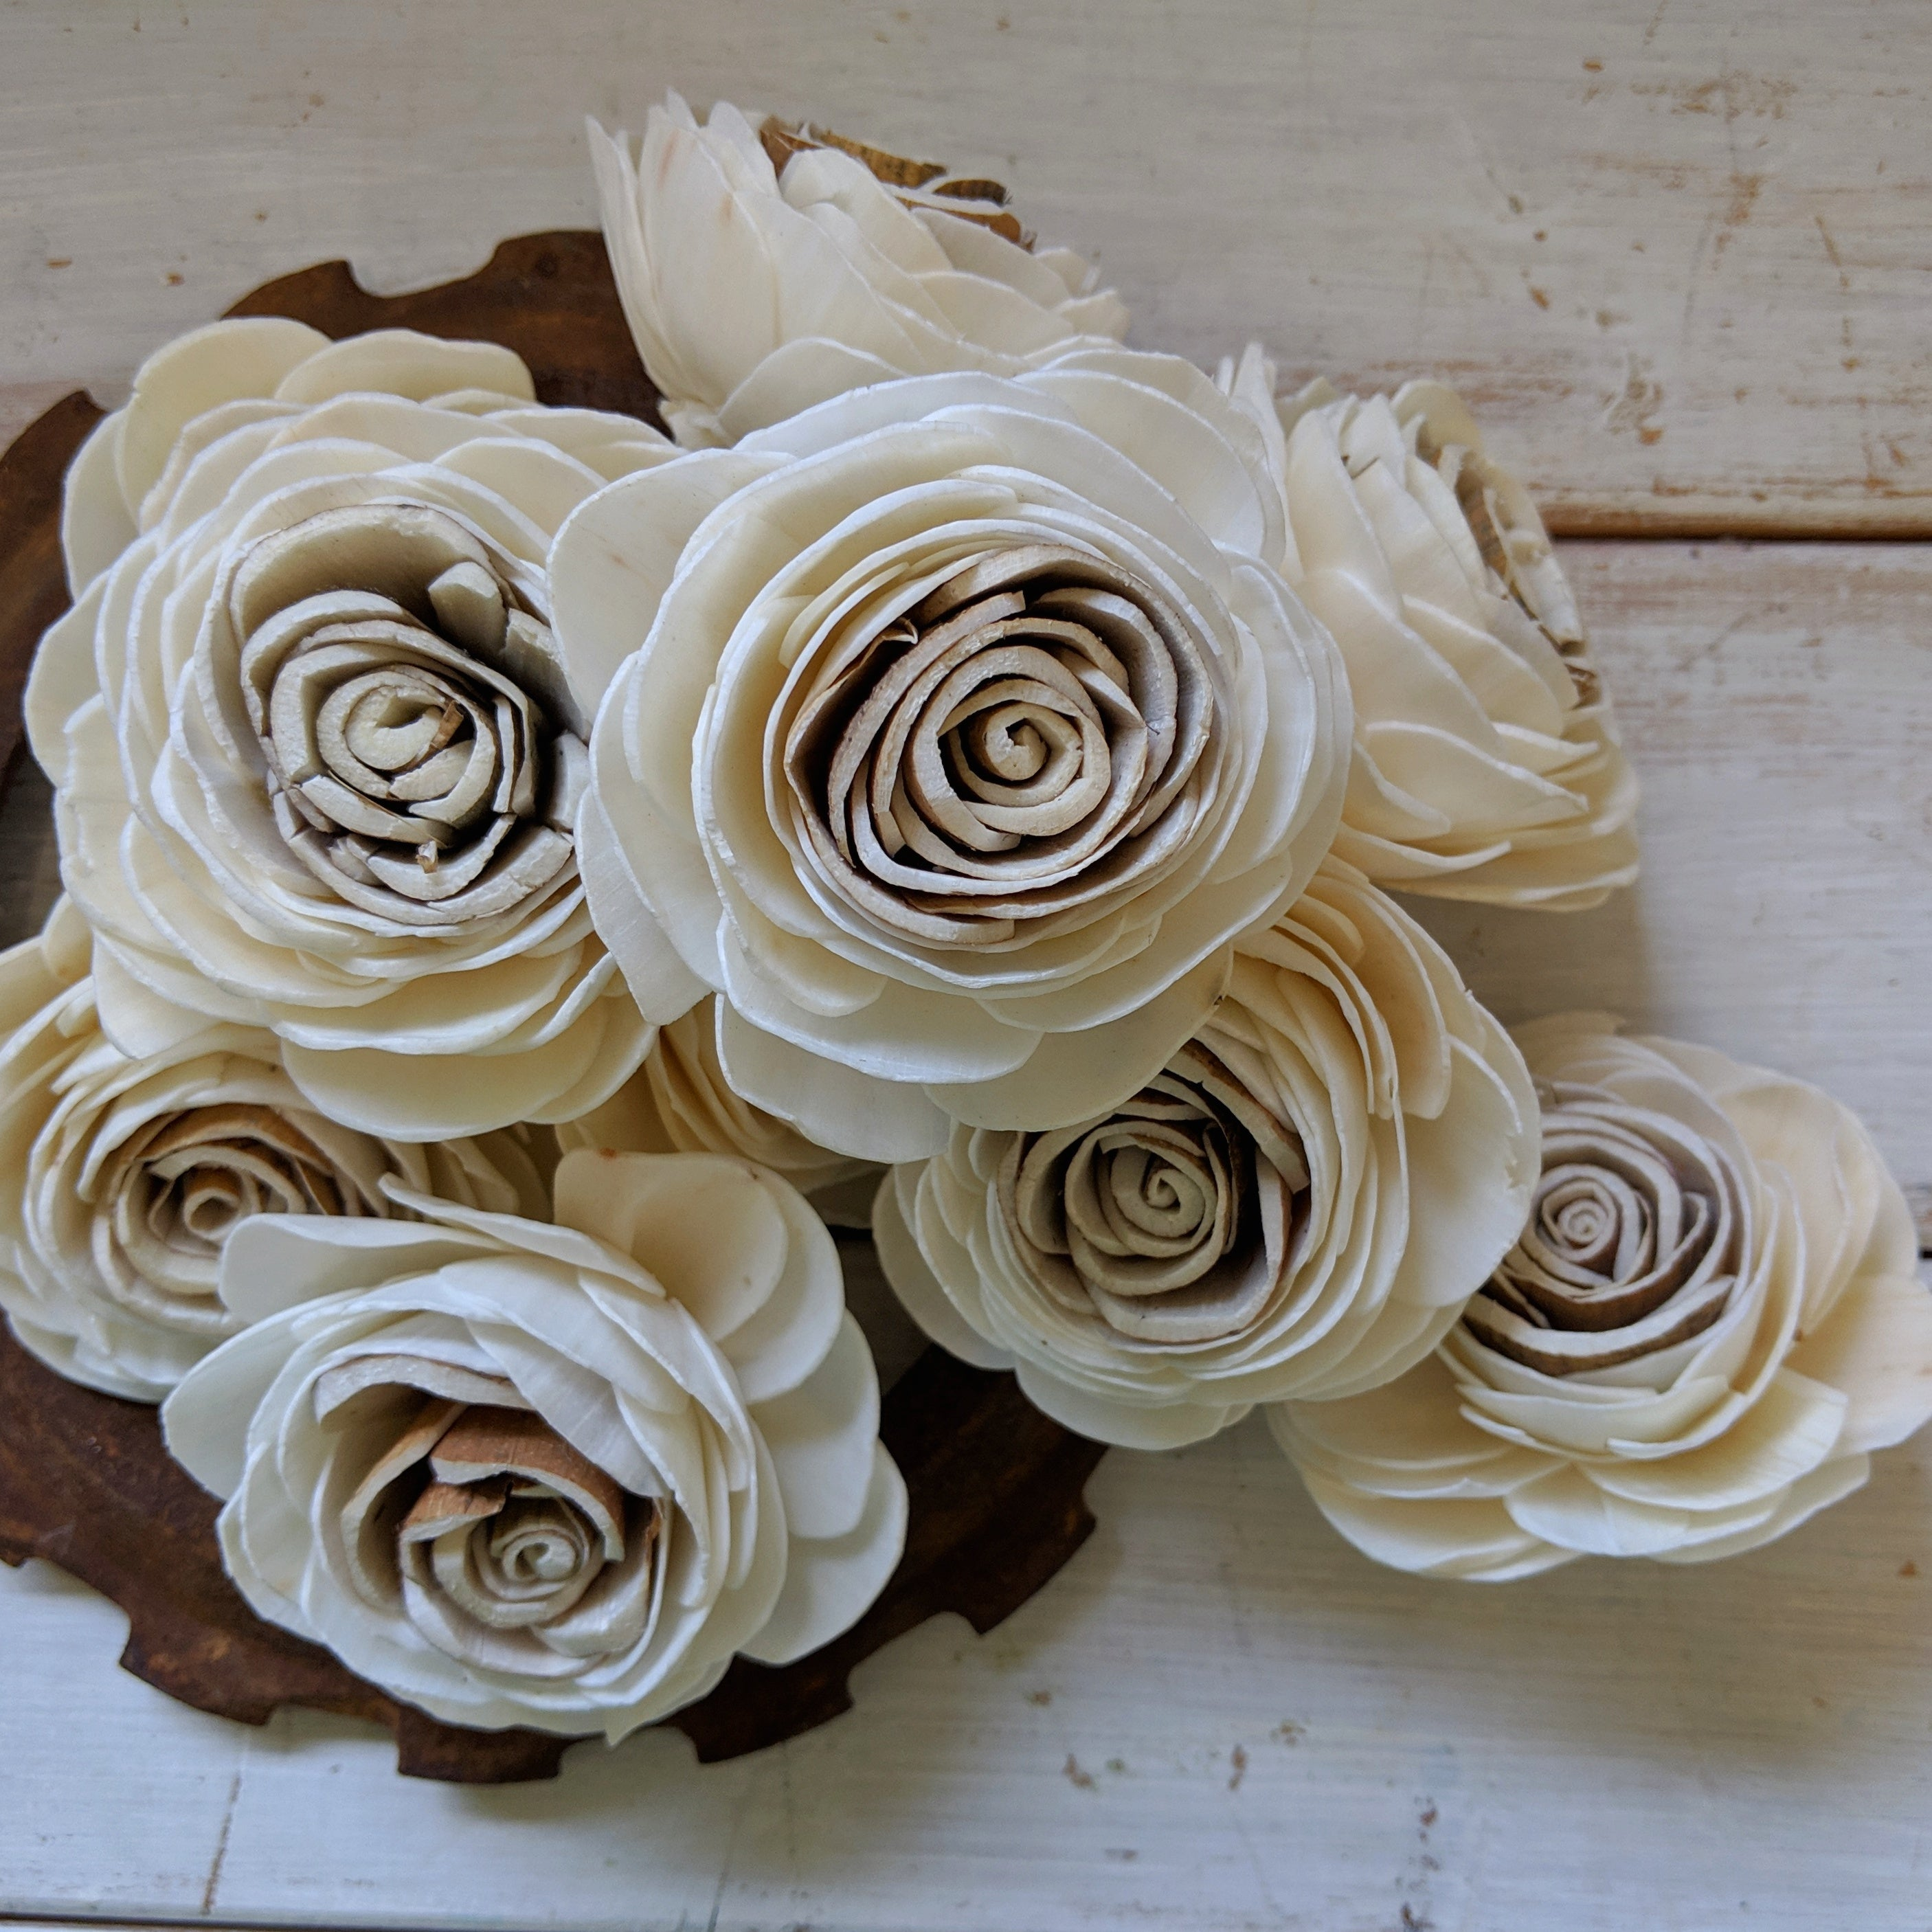 Harvest Rose - Multiple sizes available - sola wood flowers wholesale